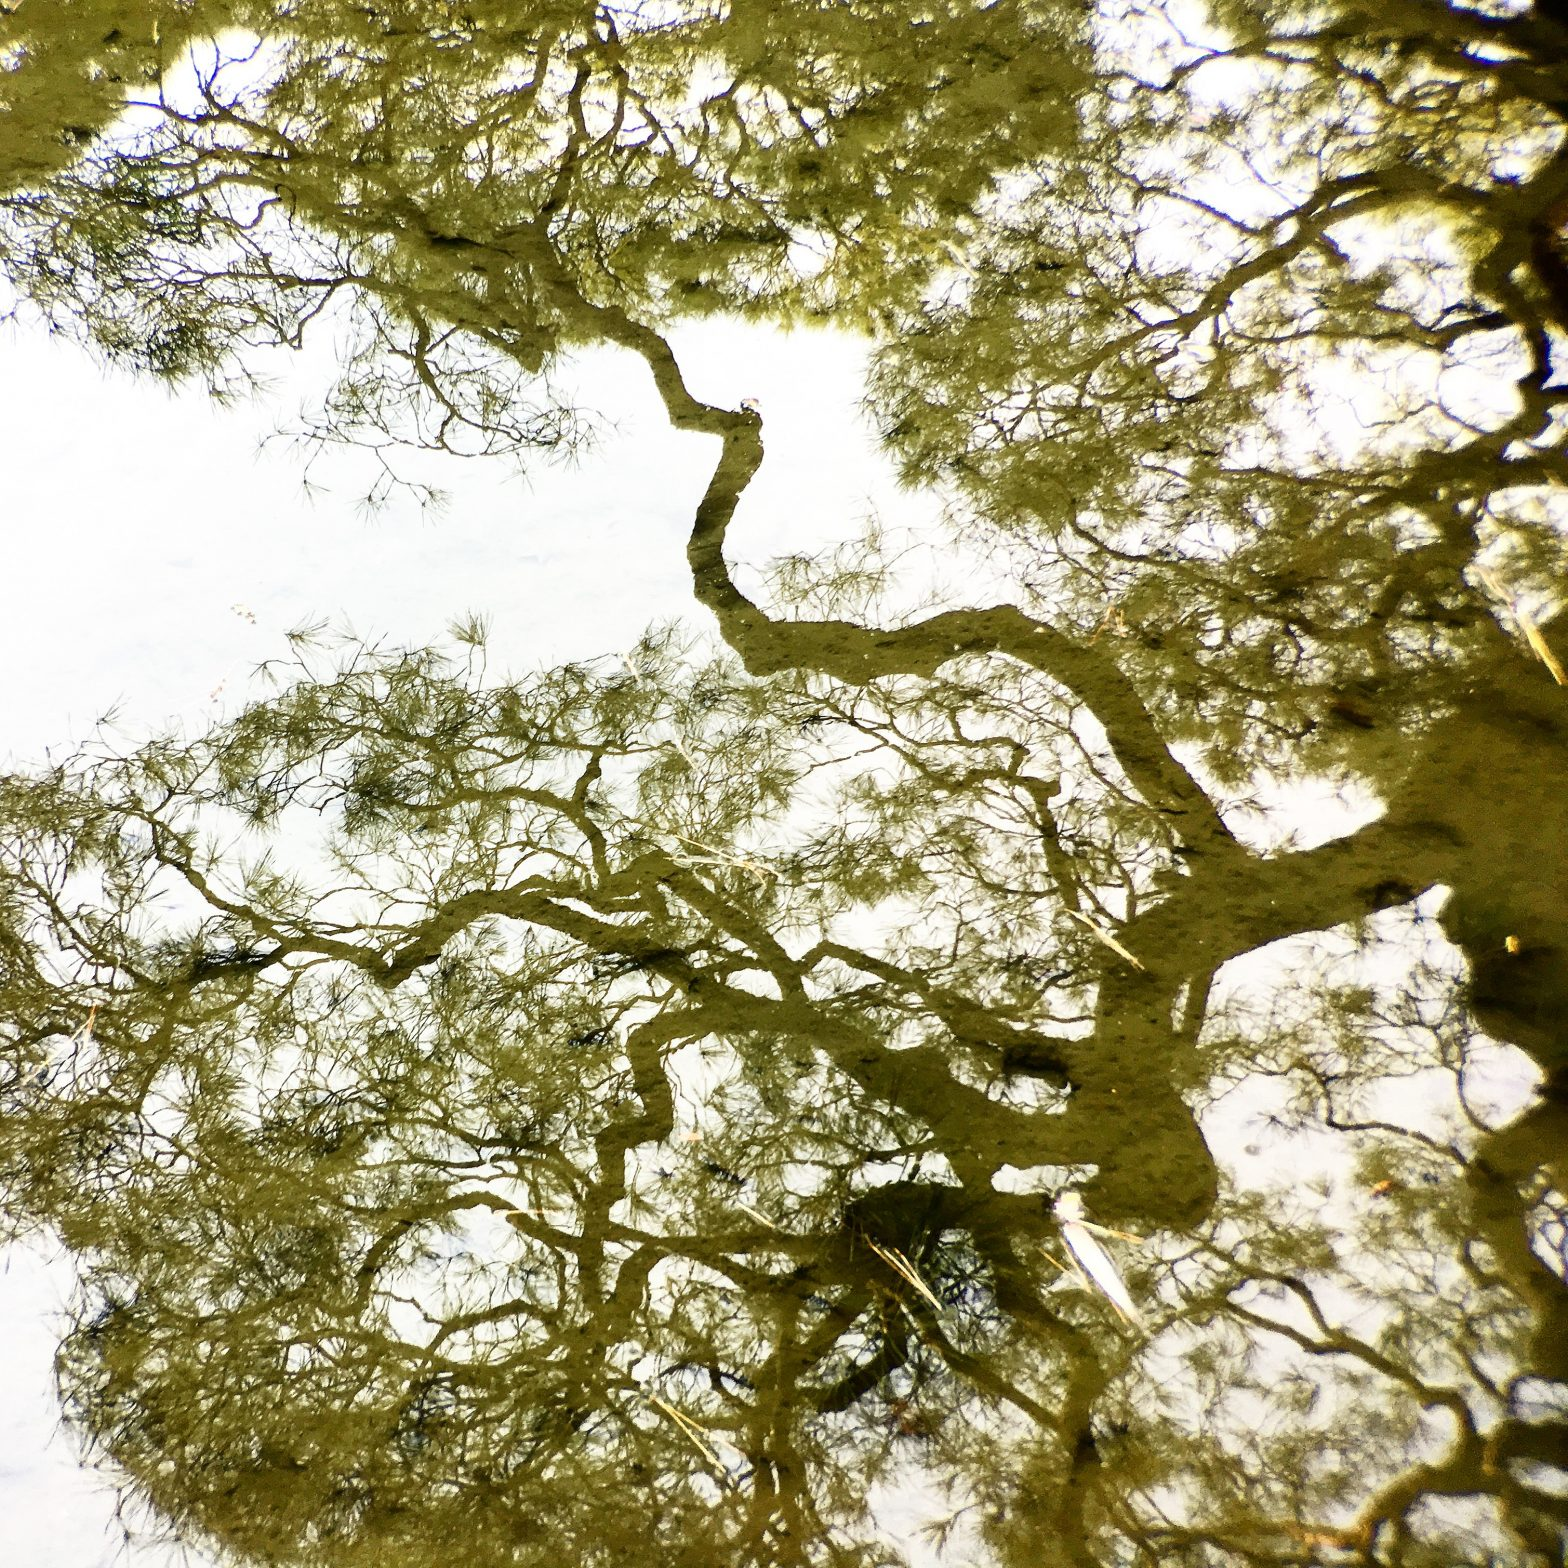 A reflection of a tree in a pond at a Japanese temple